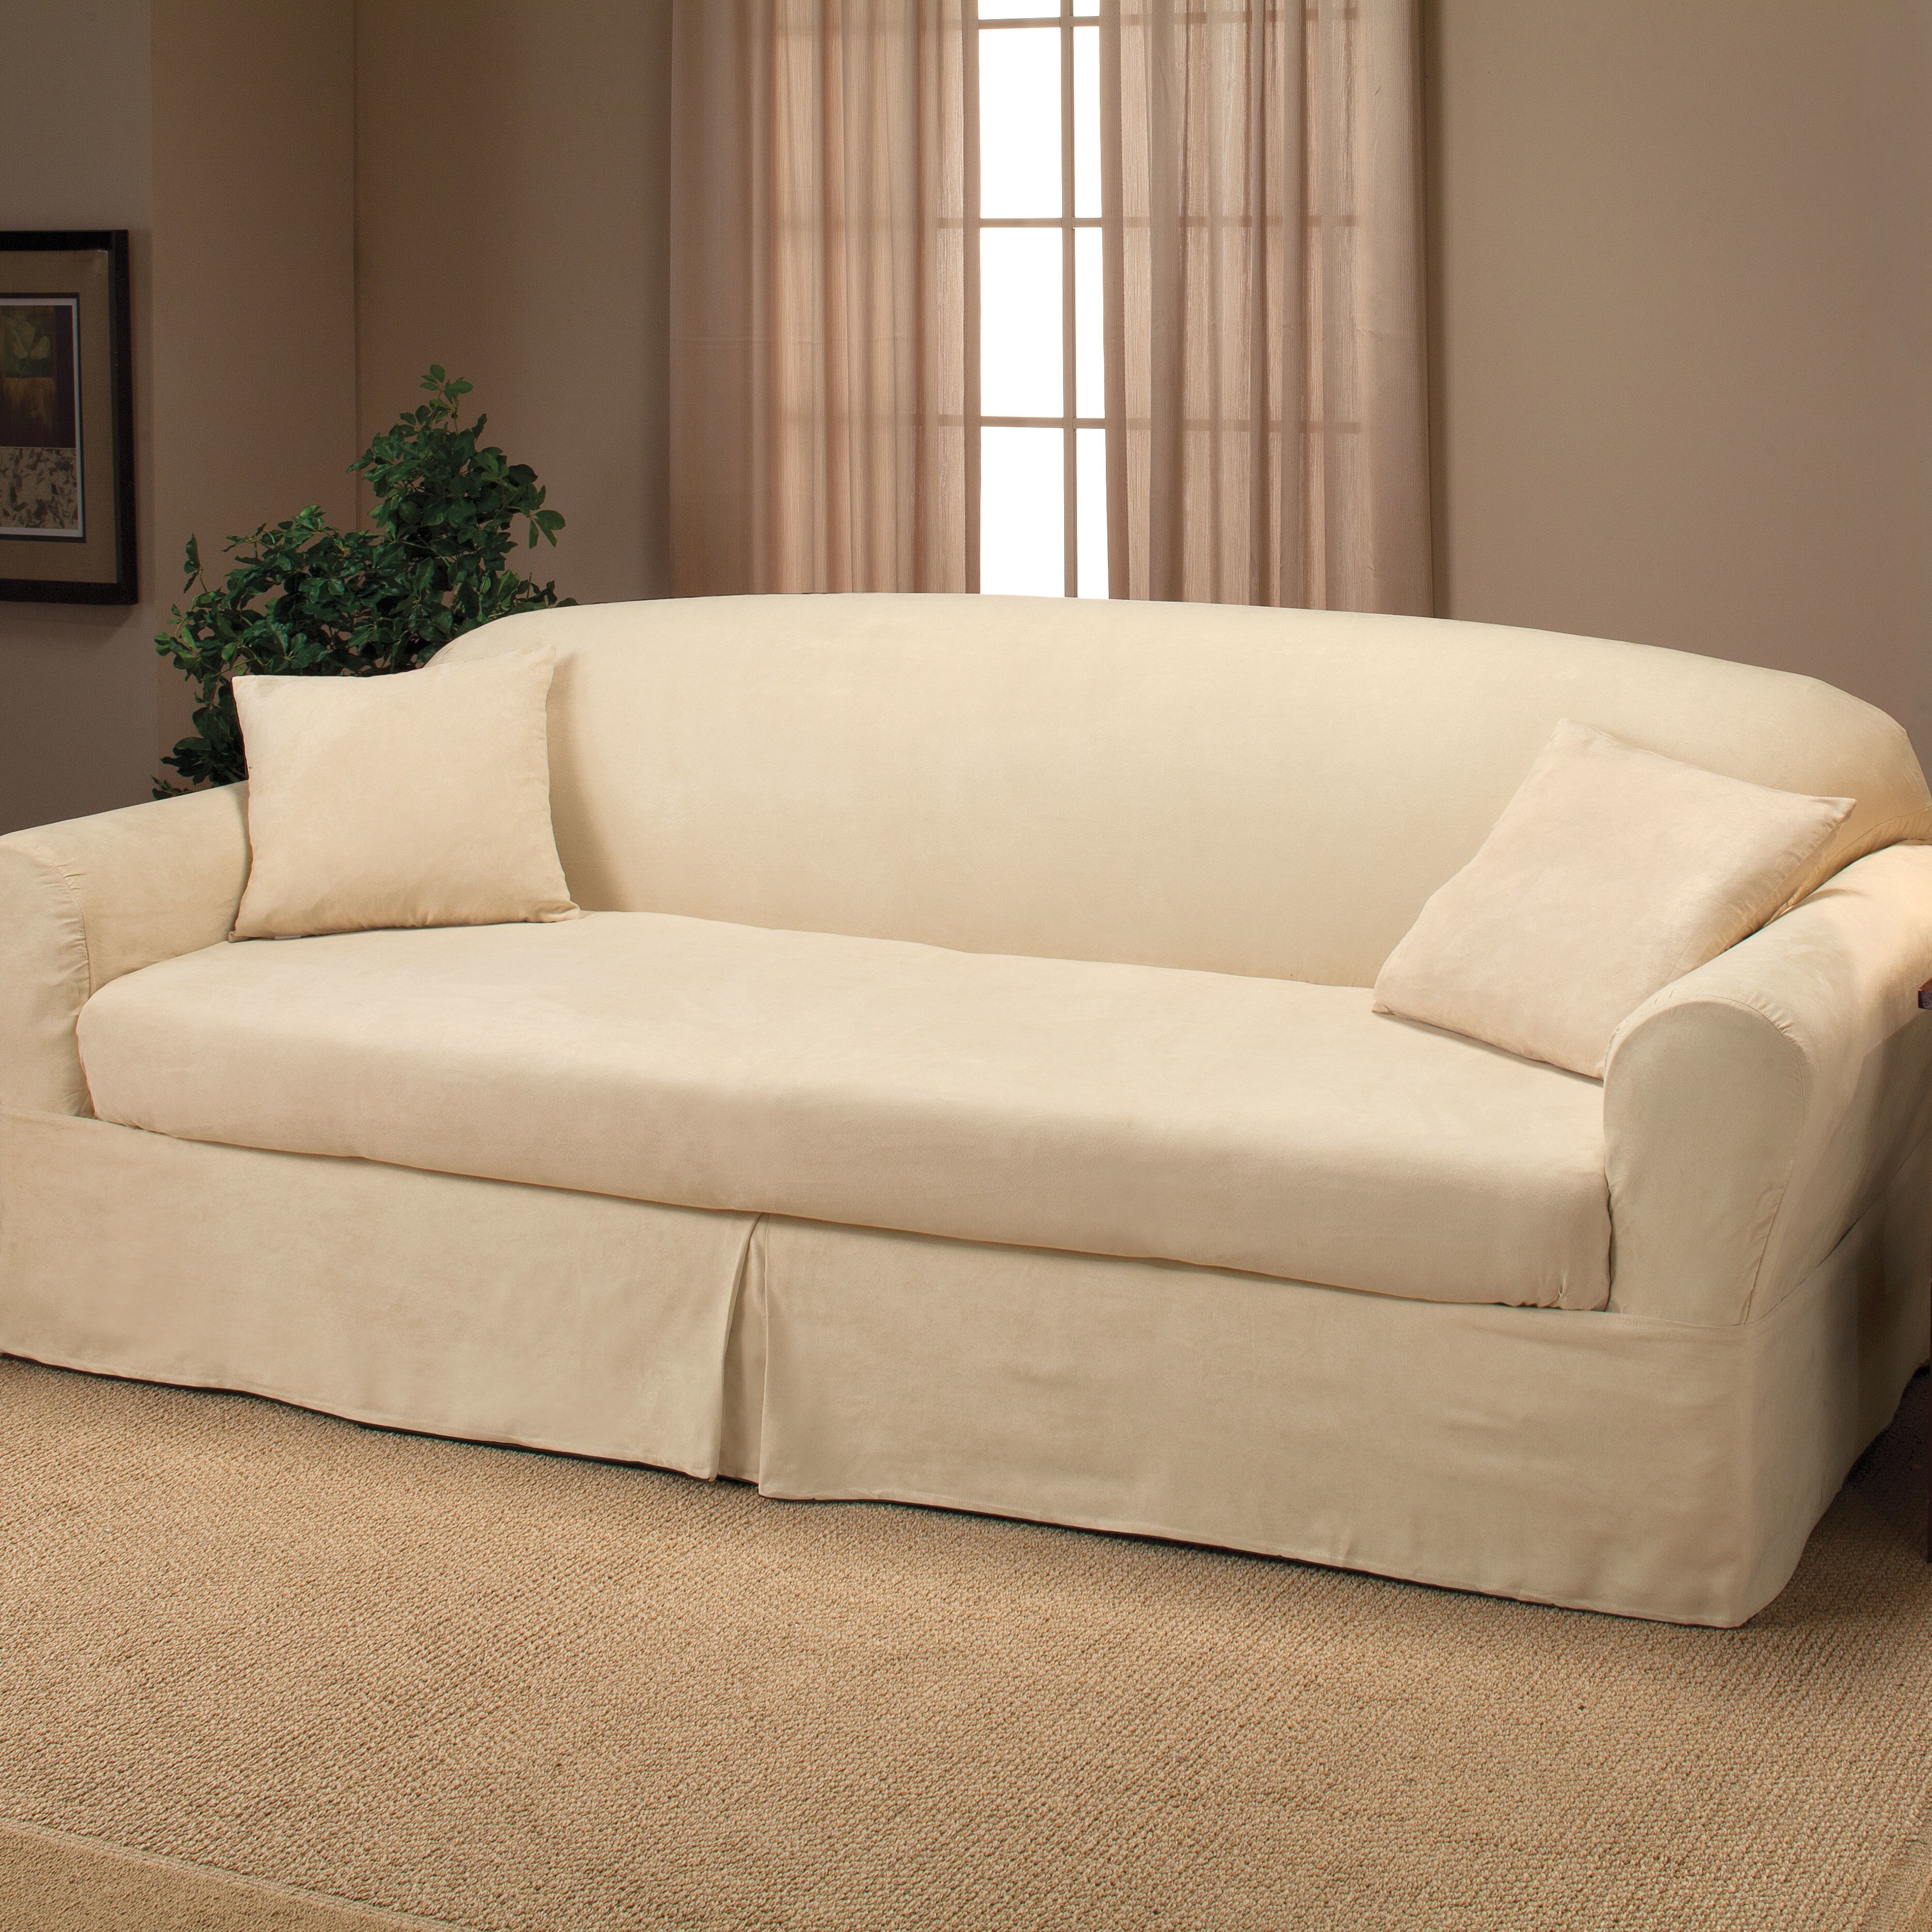 2 Piece Sectional Sofa Slipcovers - Cleanupflorida intended for Glamour Ii 3 Piece Sectionals (Image 1 of 30)